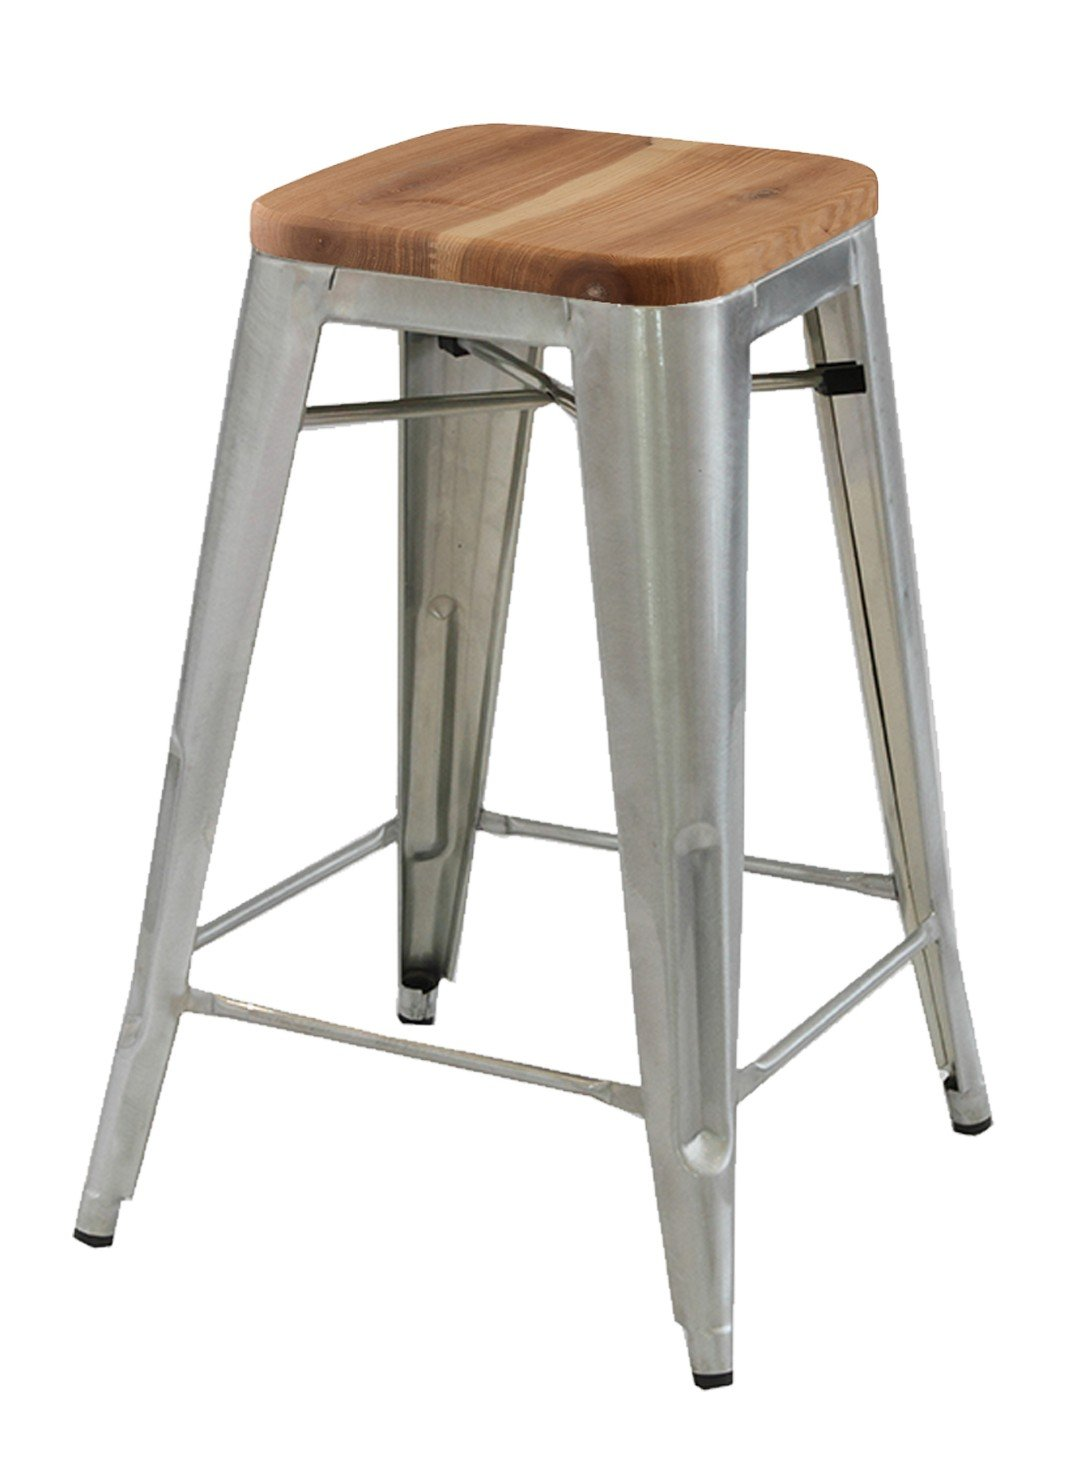 Replica Tolix Kitchen Stool With Timber Seat U3 Shop